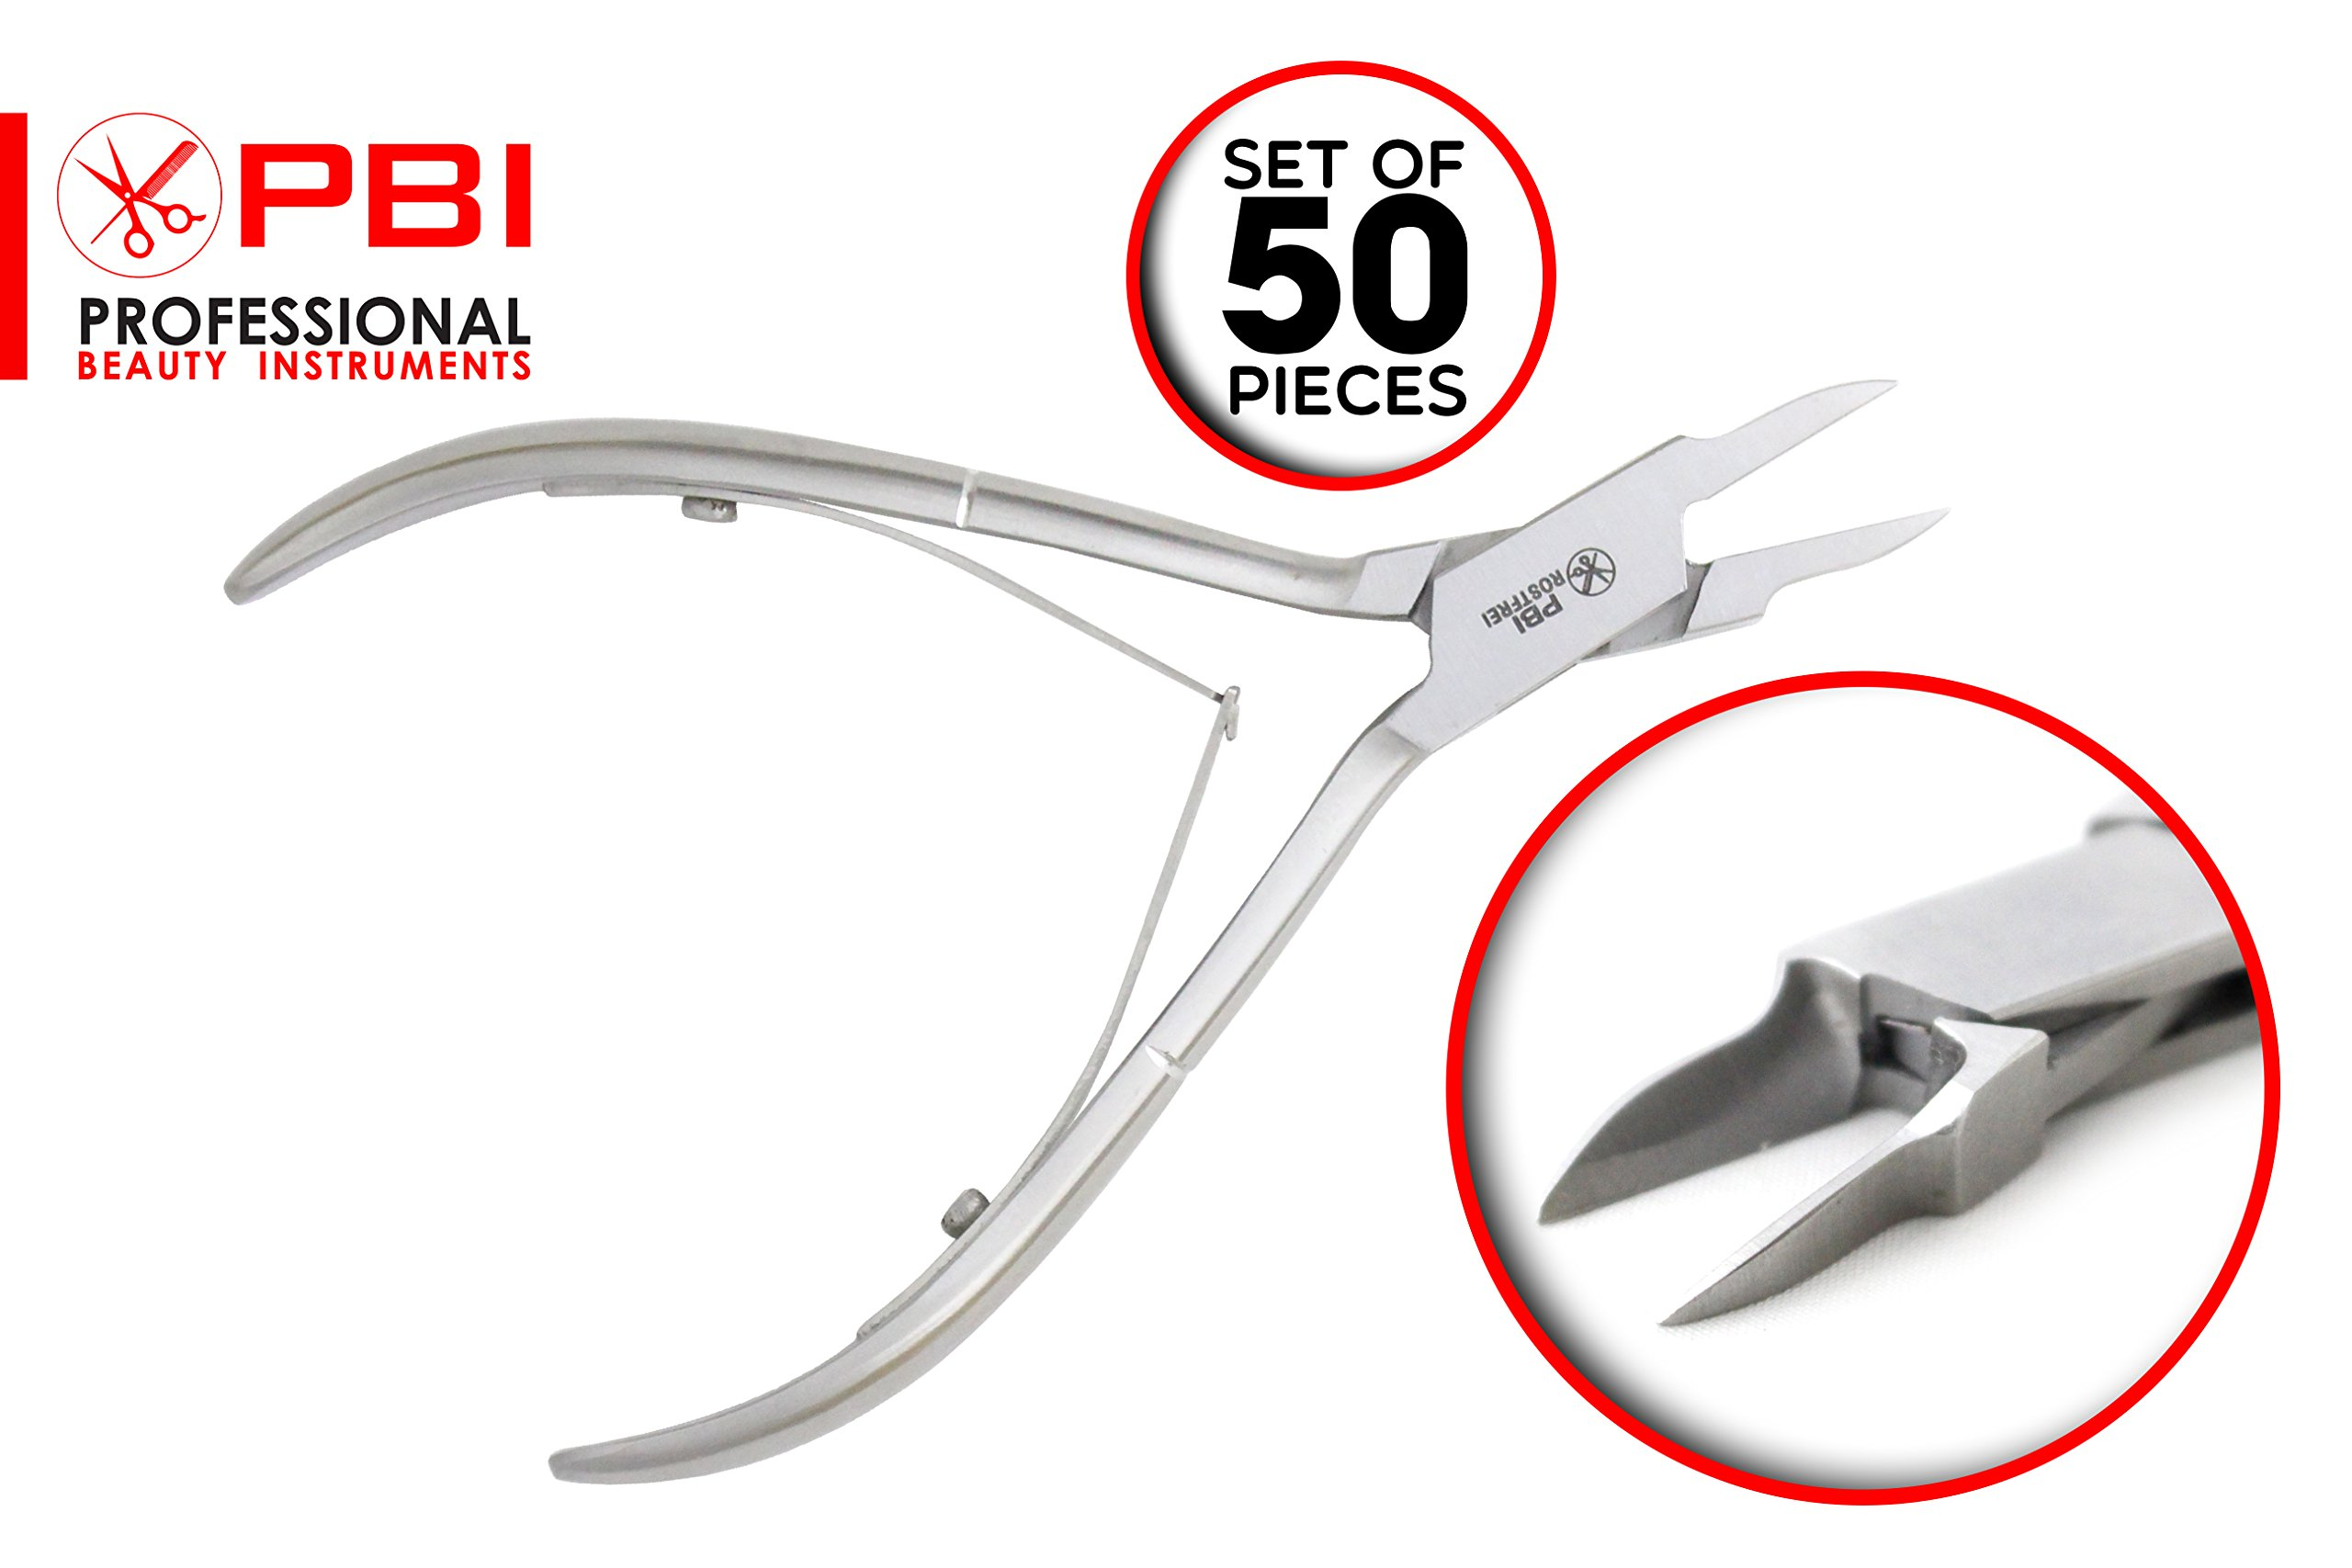 Nail nipper - Nail plier - Manicure Pedicure Nail nipper for ingrown nails - 12.5 cm - 50 pieces set - Stainless Steel from PBI